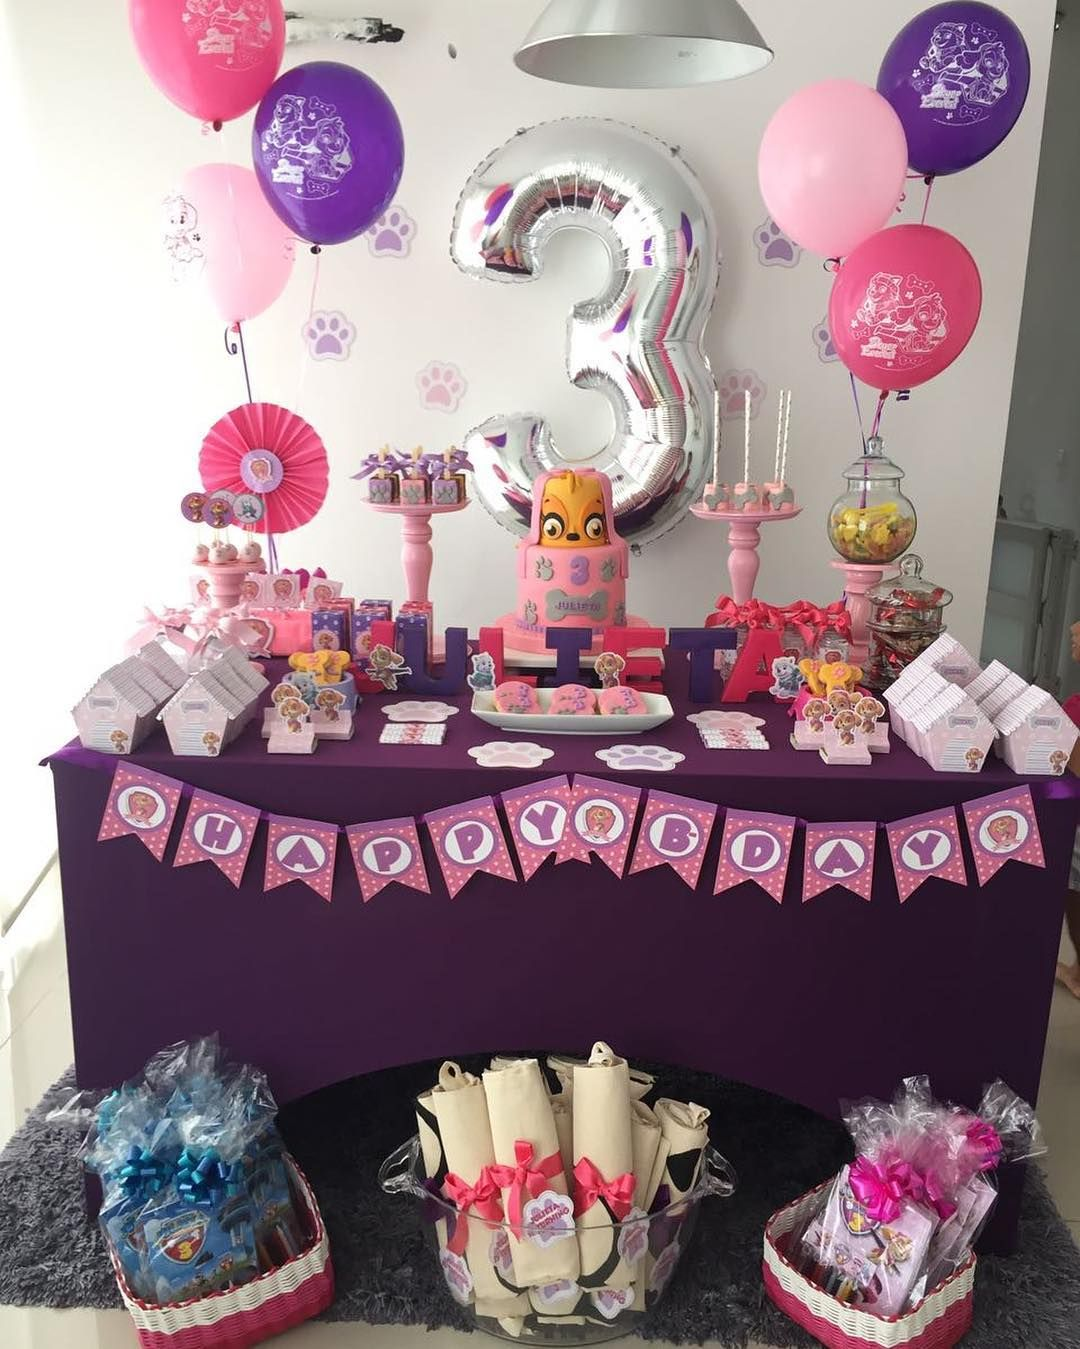 At Home Birthday Party Ideas For 6 Year Old Boy